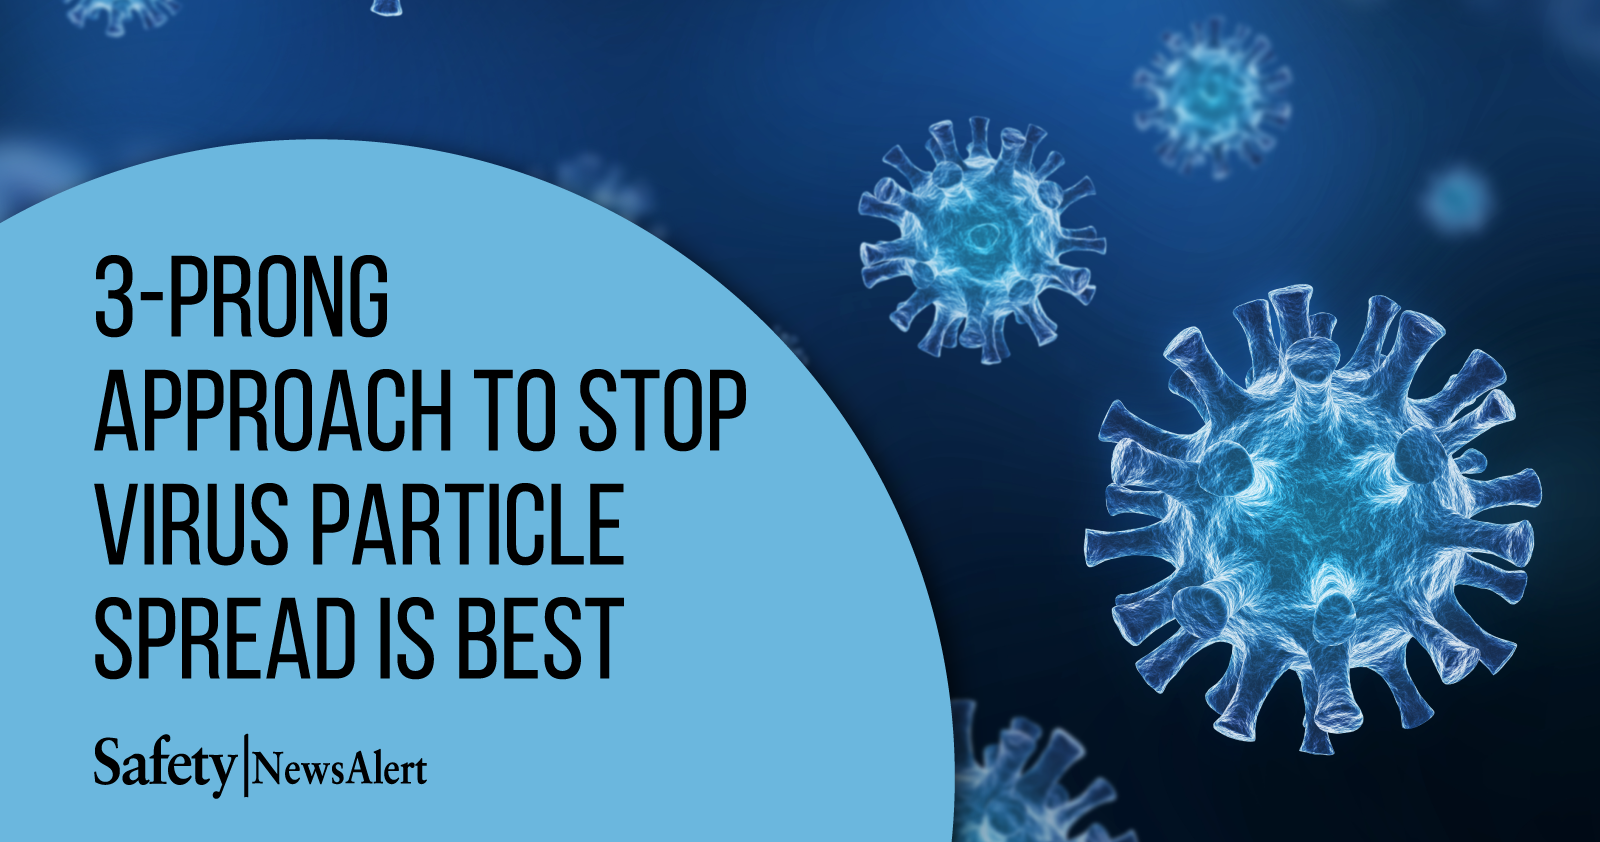 3-Prong Approach To Stop Virus Particle Spread Is Best